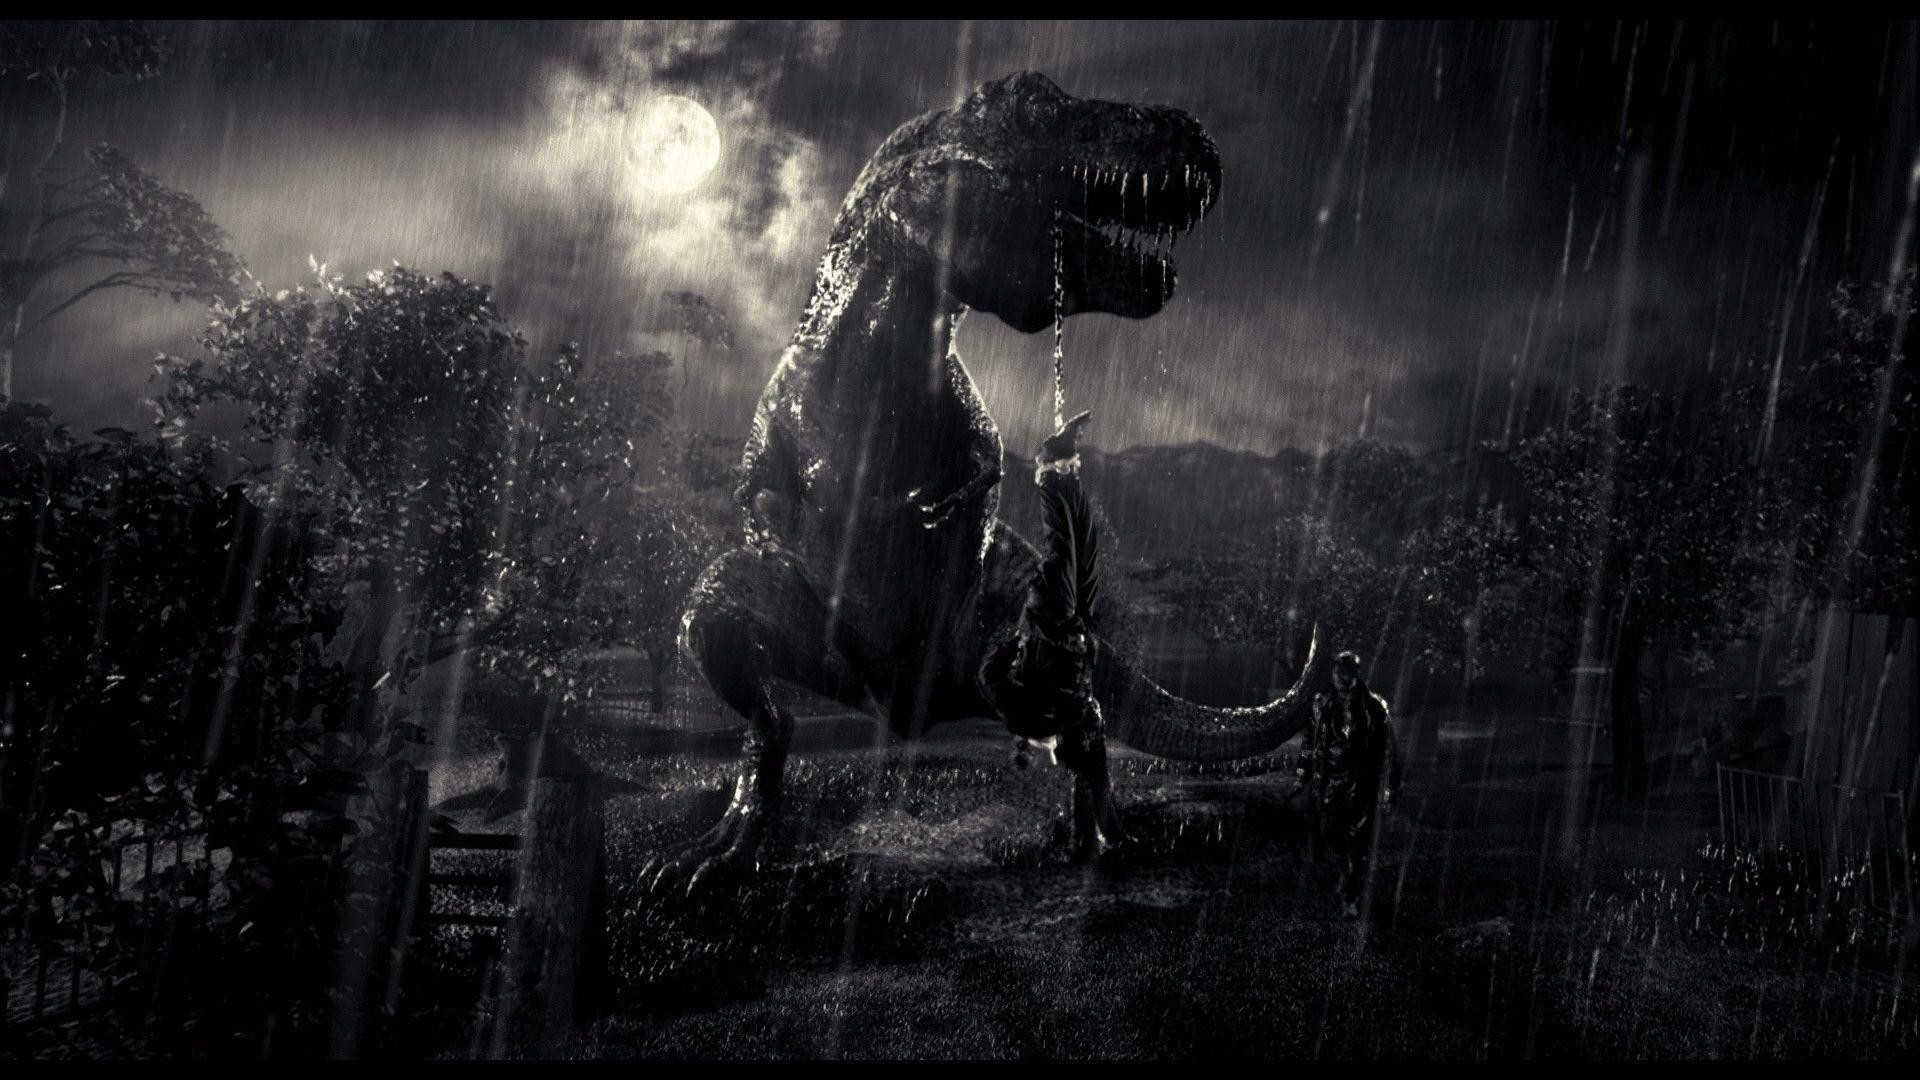 1920x1080 T Rex Wallpaper 3824 HD Desktop Backgrounds and Widescreen .